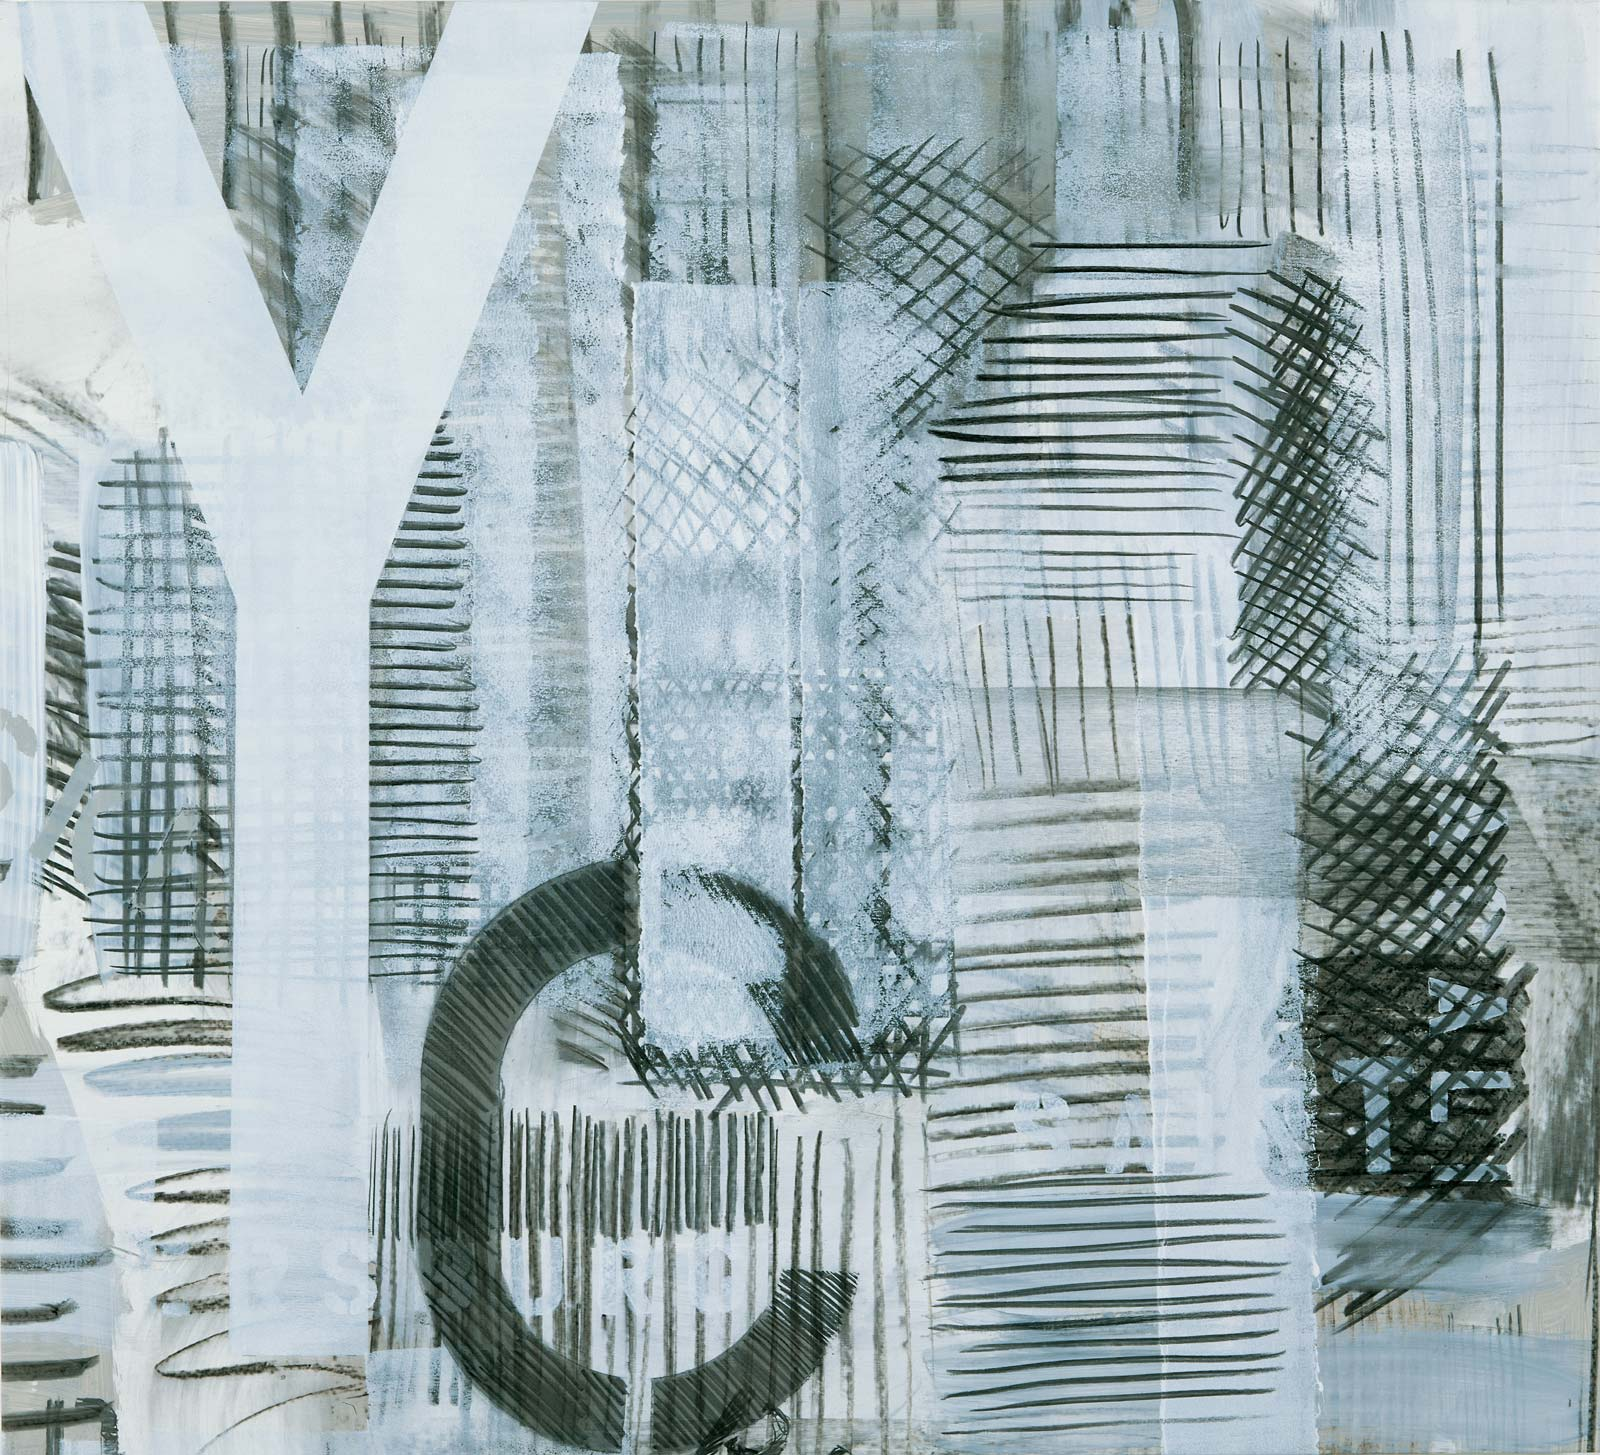 From the series St. Petersburg, 2003, 97 x 107 cm (each, 10 parts), acrylic and charcoal on canvas